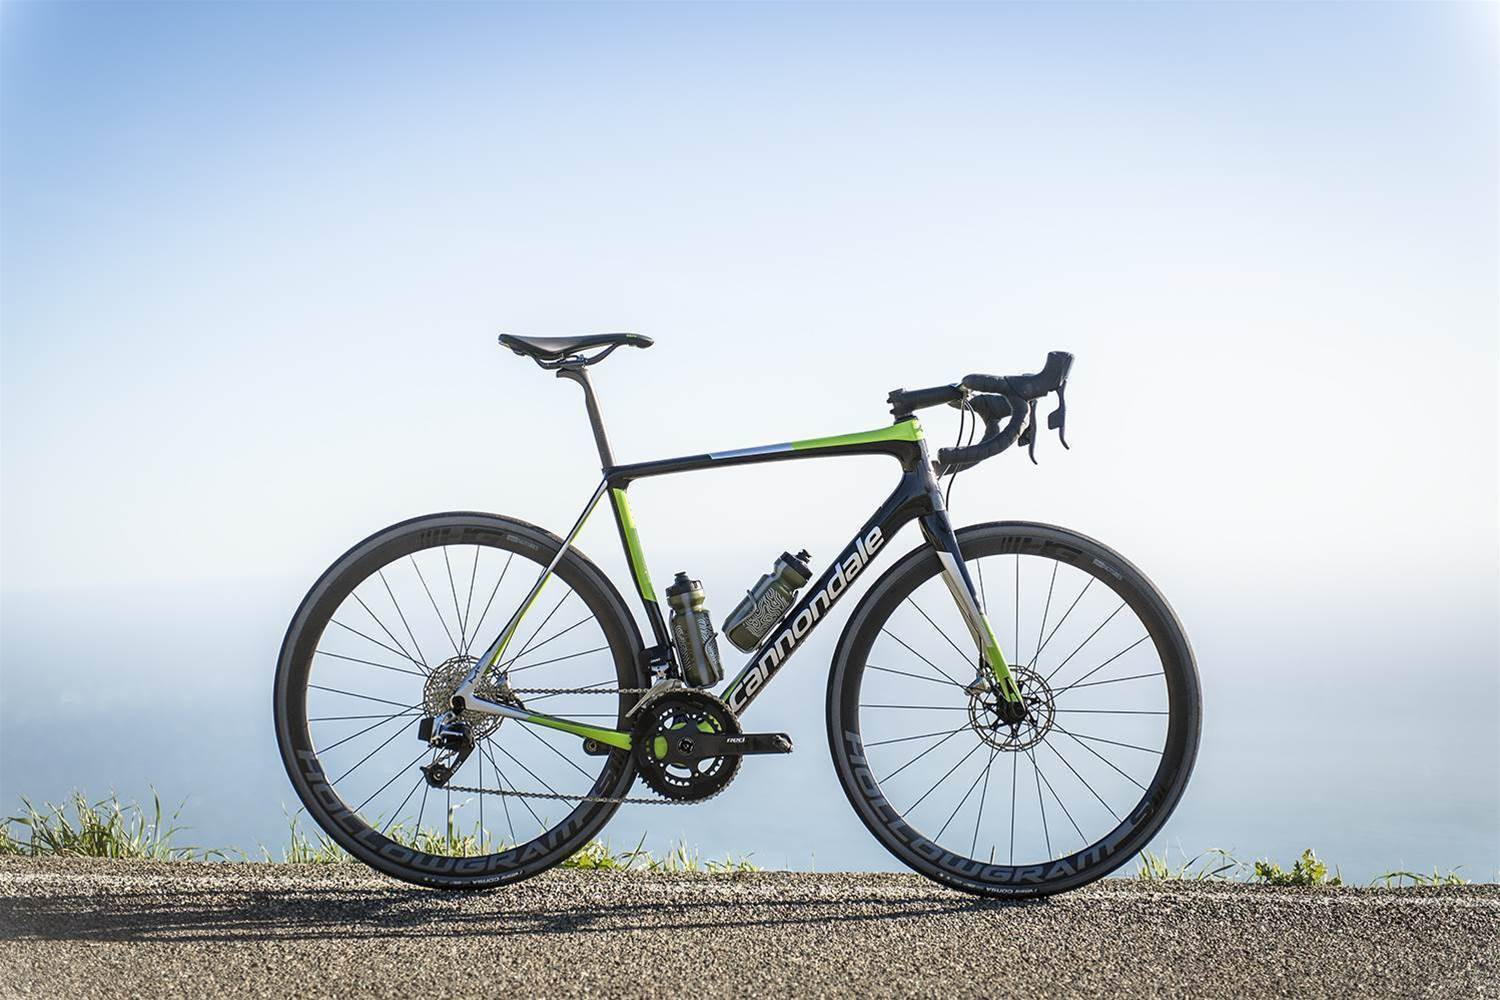 Cannondale's Latest Synapse Road Bike Offers More Capability in a High-Performance Package